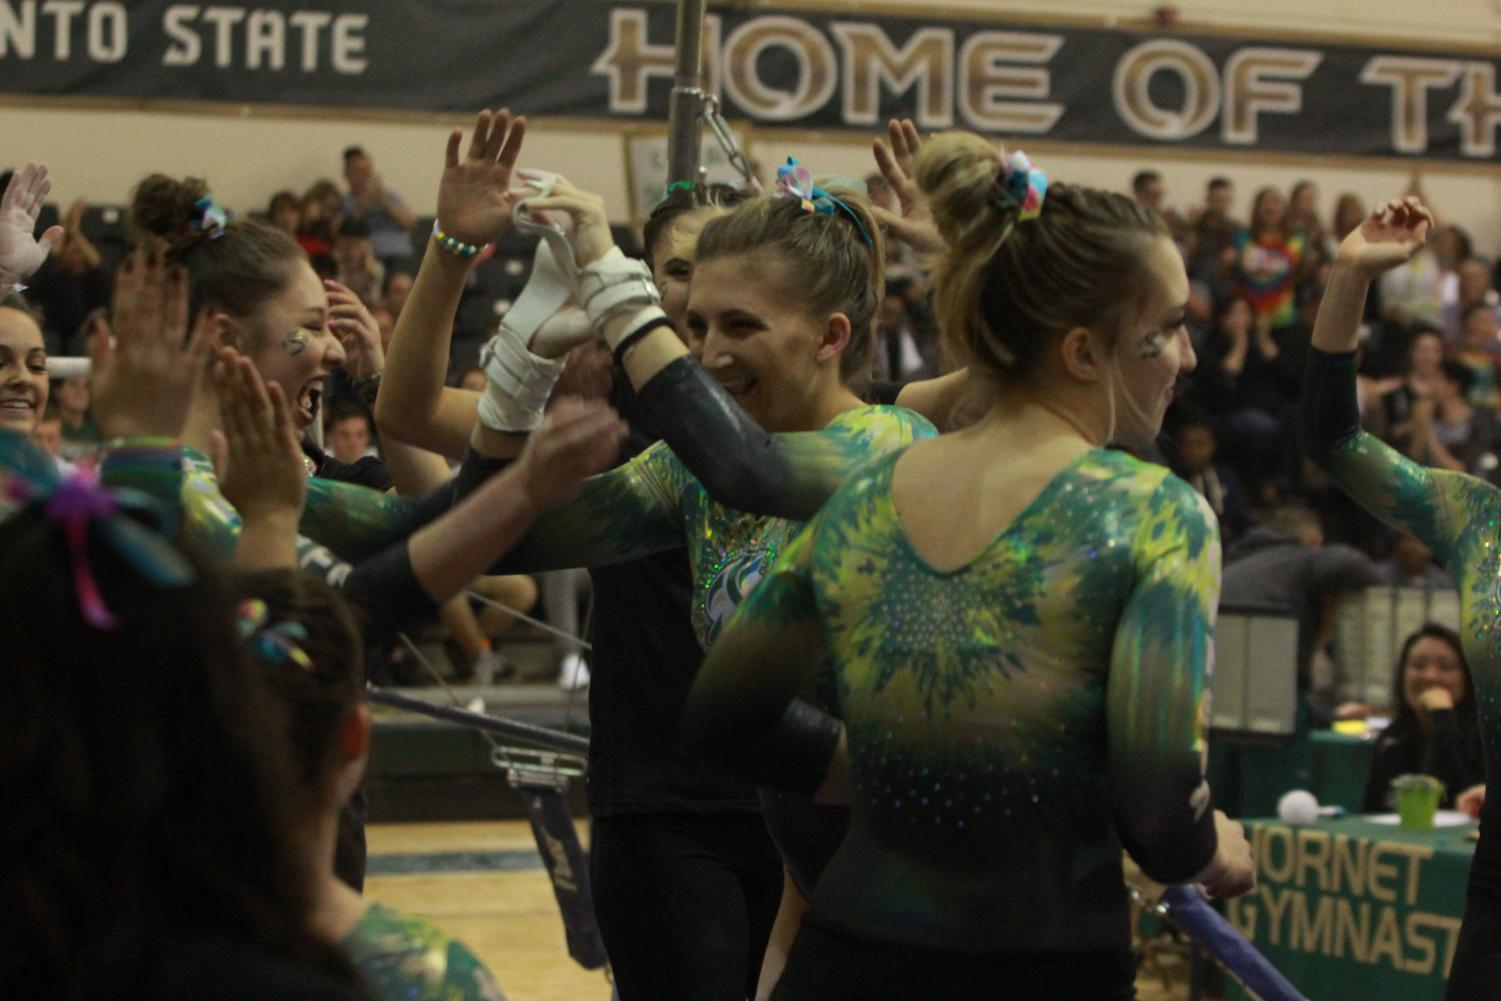 Sacramento State senior gymnast Caitlin Soliwoda celebrates after competing on the uneven bars at the Nest on Friday, March 9, 2018. Soliwoda was one of four Hornets to qualify for an NCAA Regional.